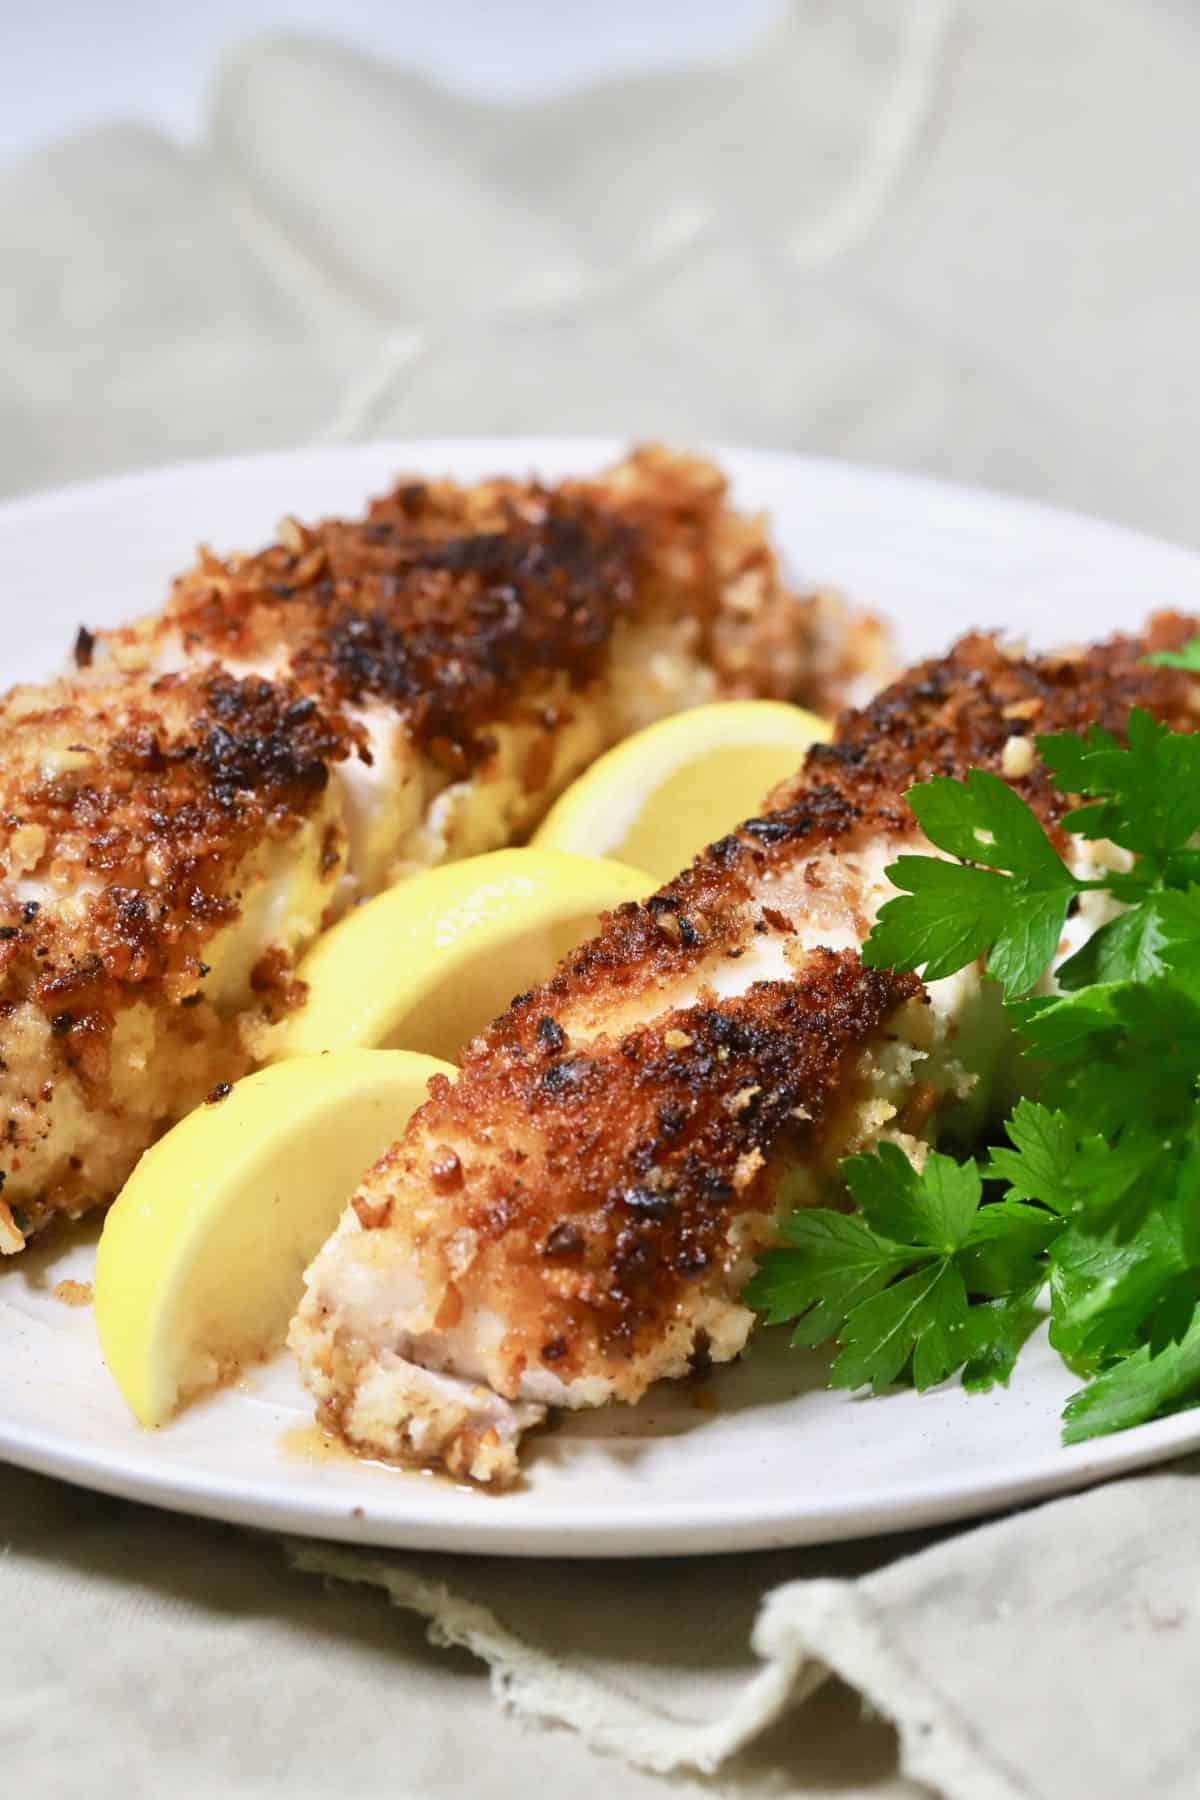 Two pecan crusted grouper fillets on a plate.